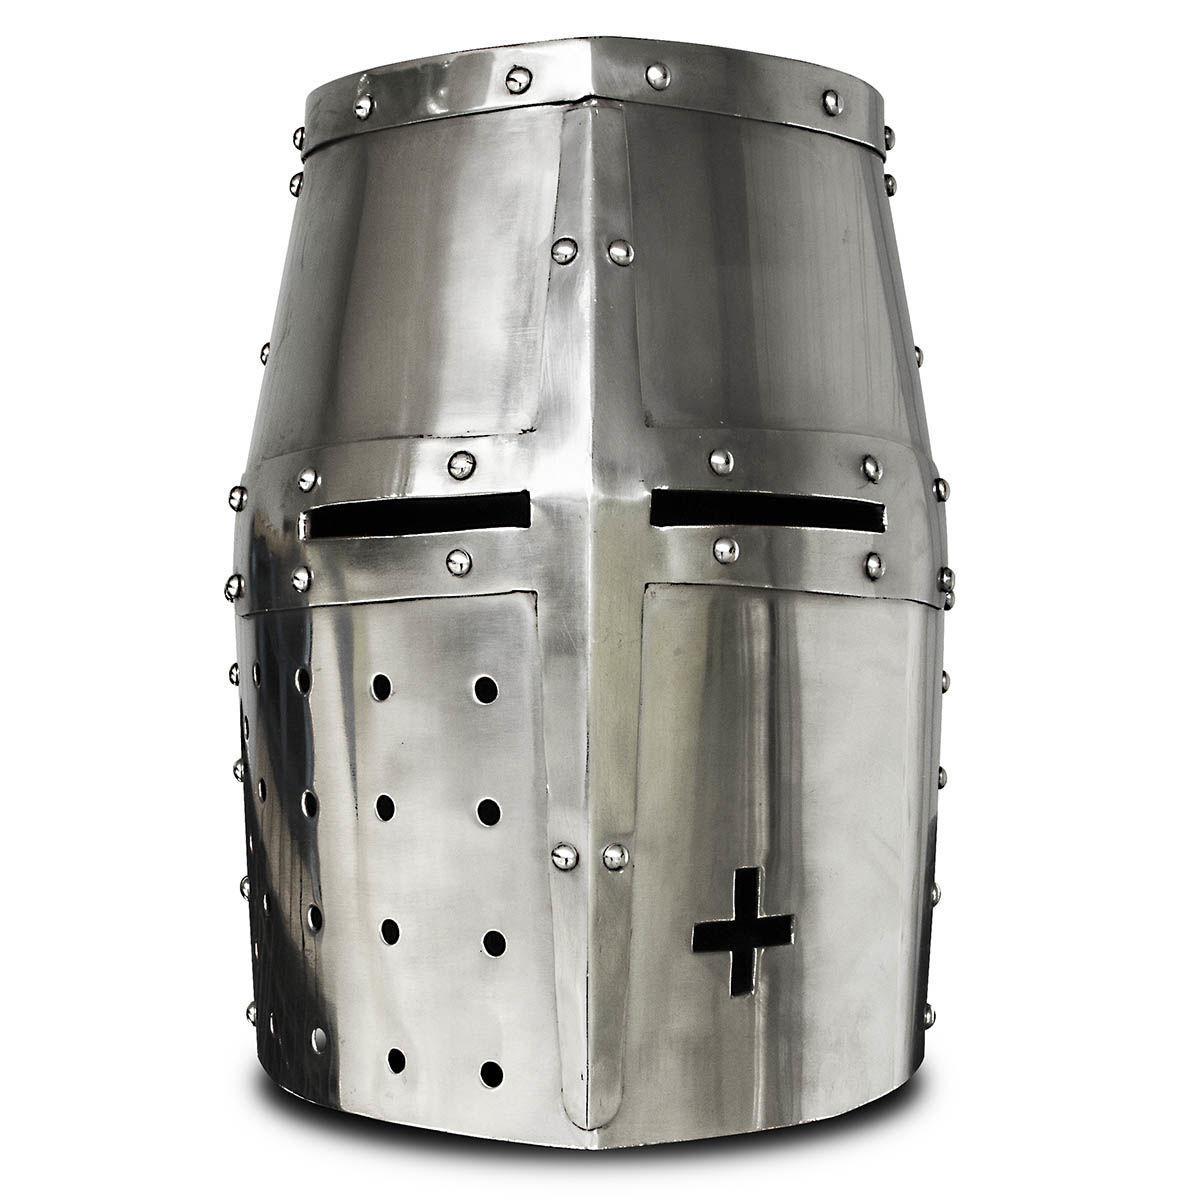 Windlass Crusader Helmet is 18 gauge steel with narrow eye slits for protection